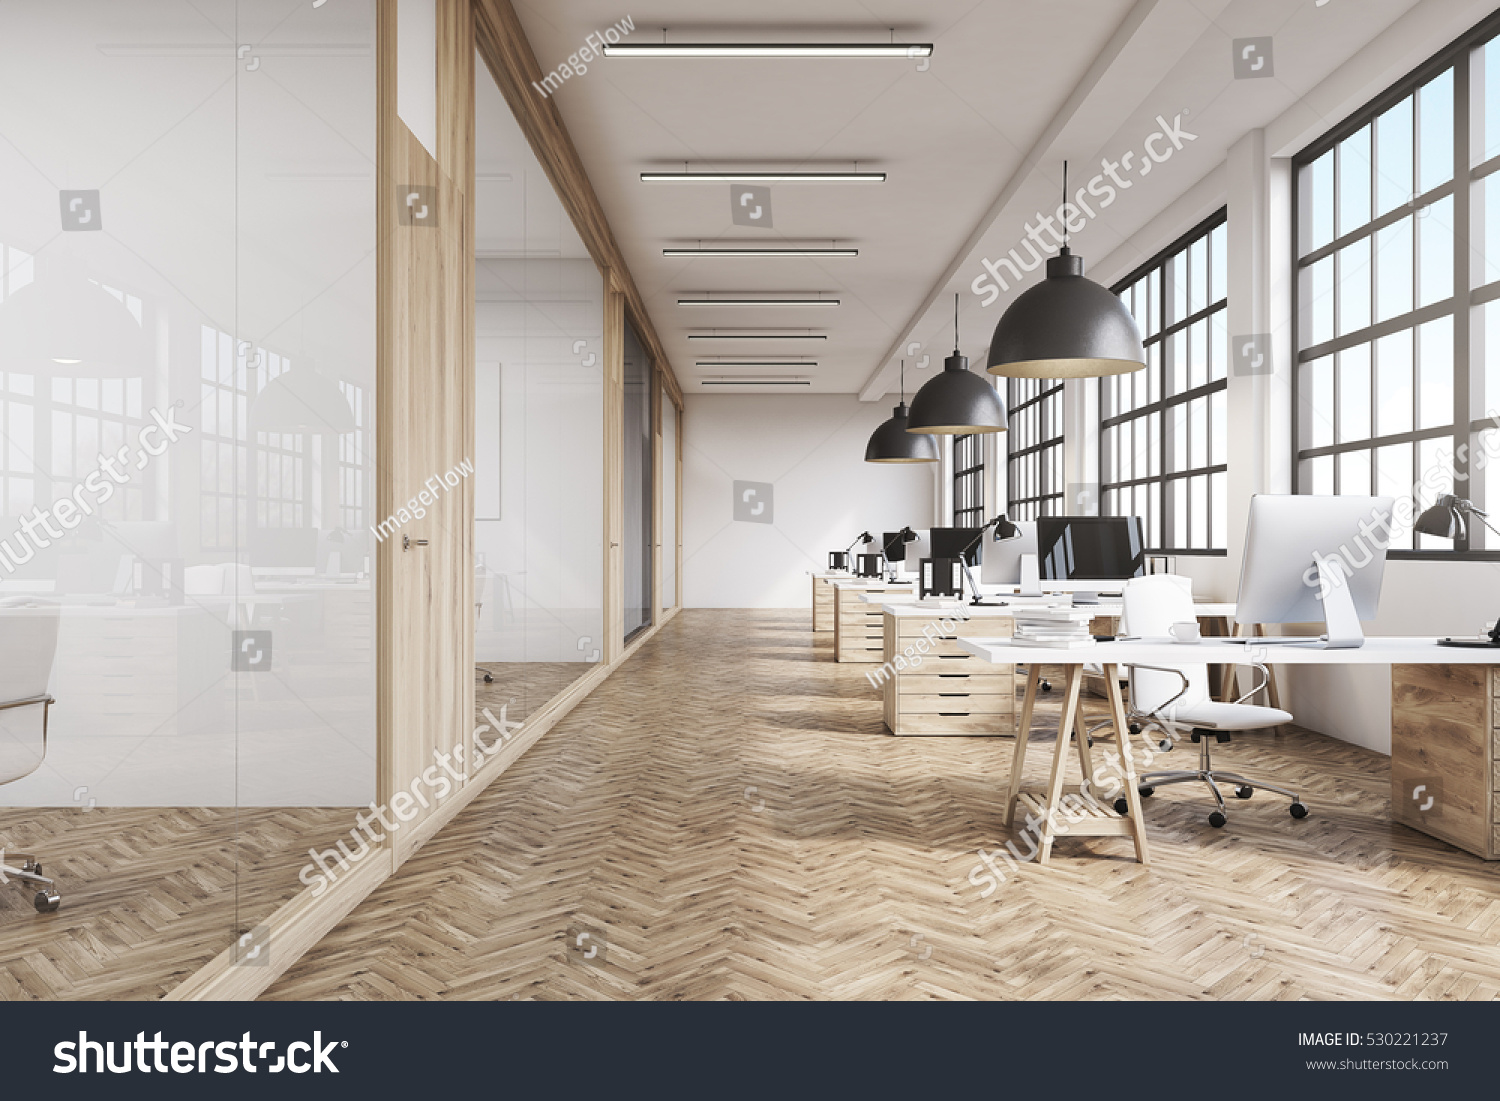 stock-photo-front-view-of-an-office-interior-with-a-row-of-dark-wood-tables-standing-under-large-windows-530221237